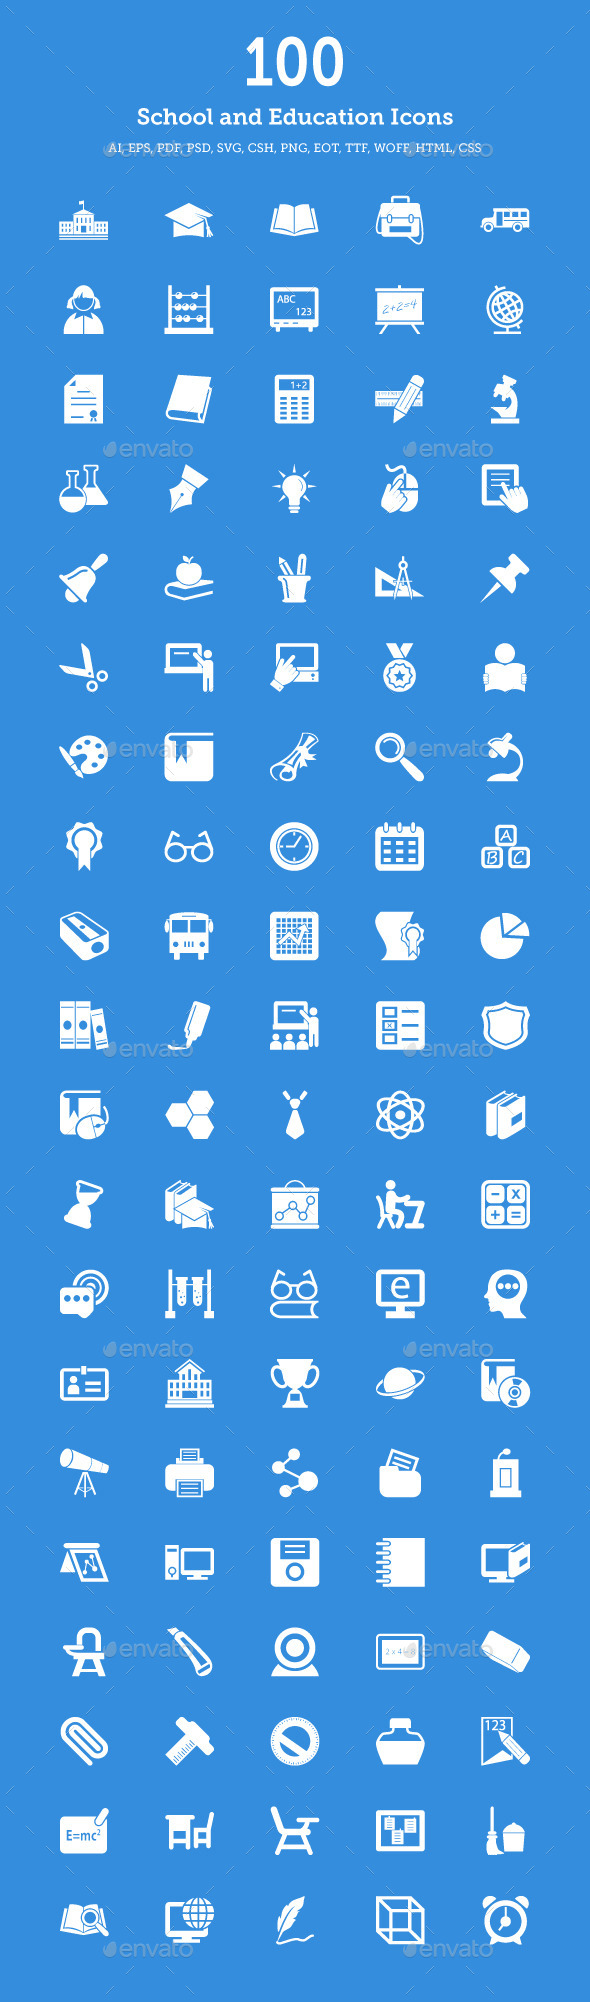 GraphicRiver School and Education Vector Icons 9270123